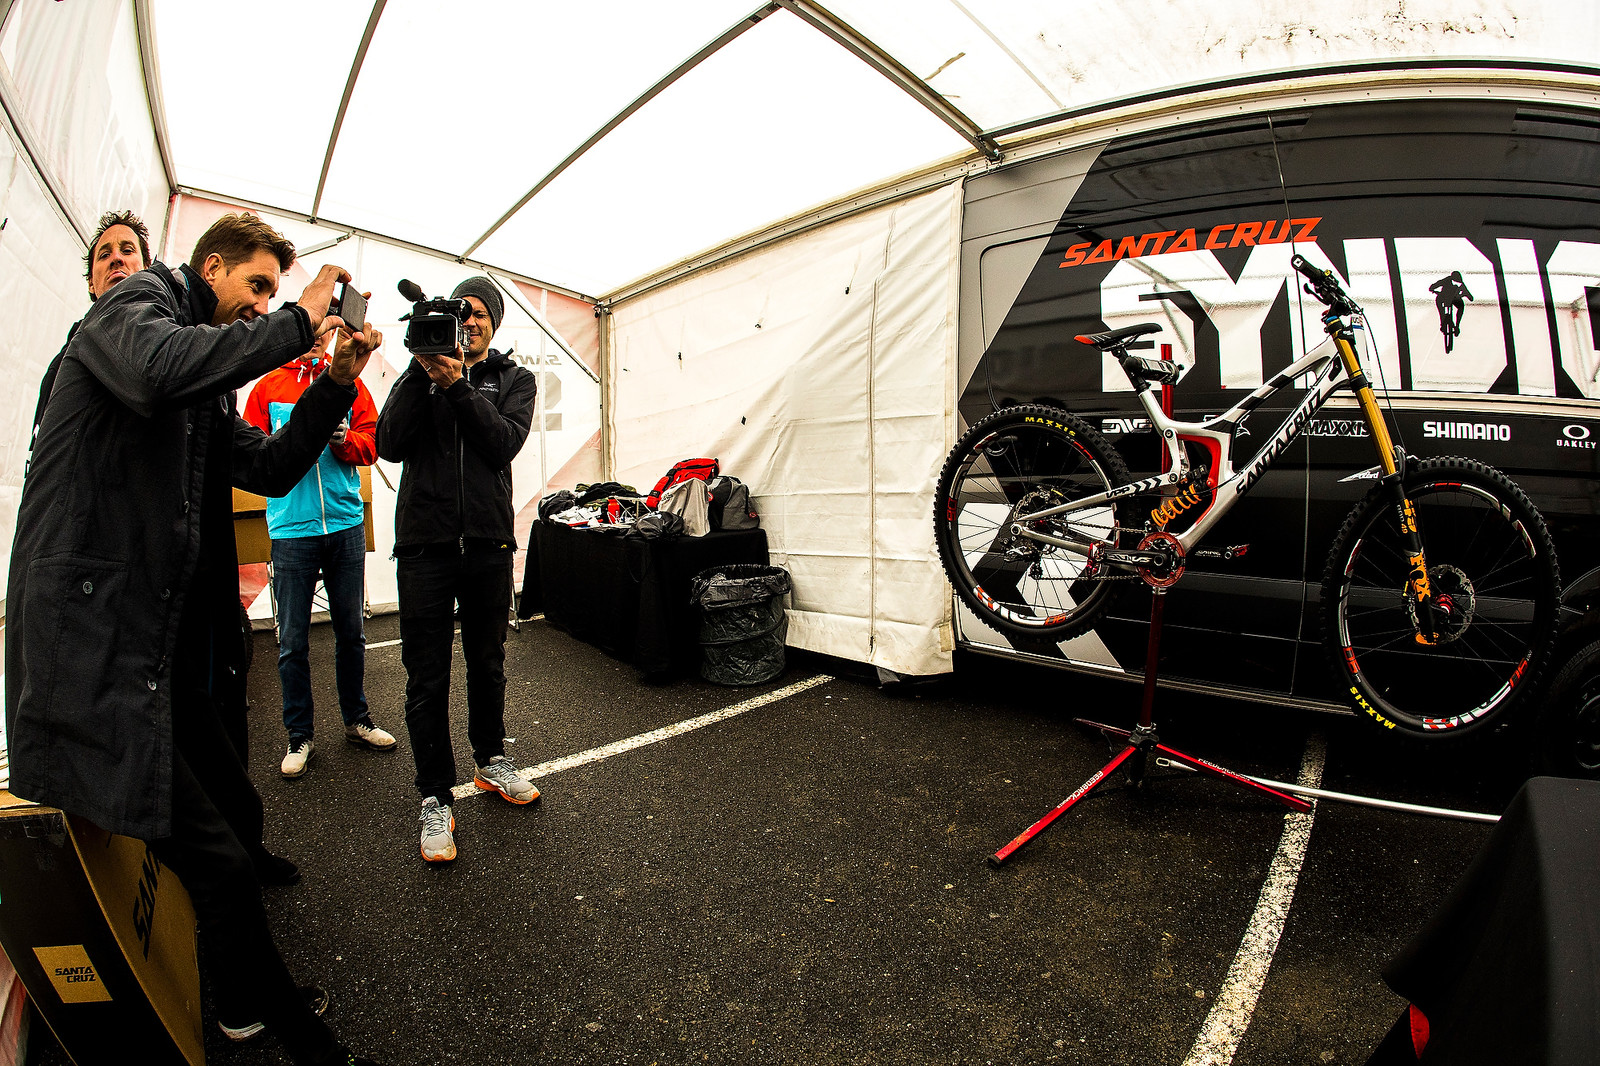 Bike Lust Swoon in Syndicate Pits - 2017 Lourdes World Cup Pit Bits - Mountain Biking Pictures - Vital MTB